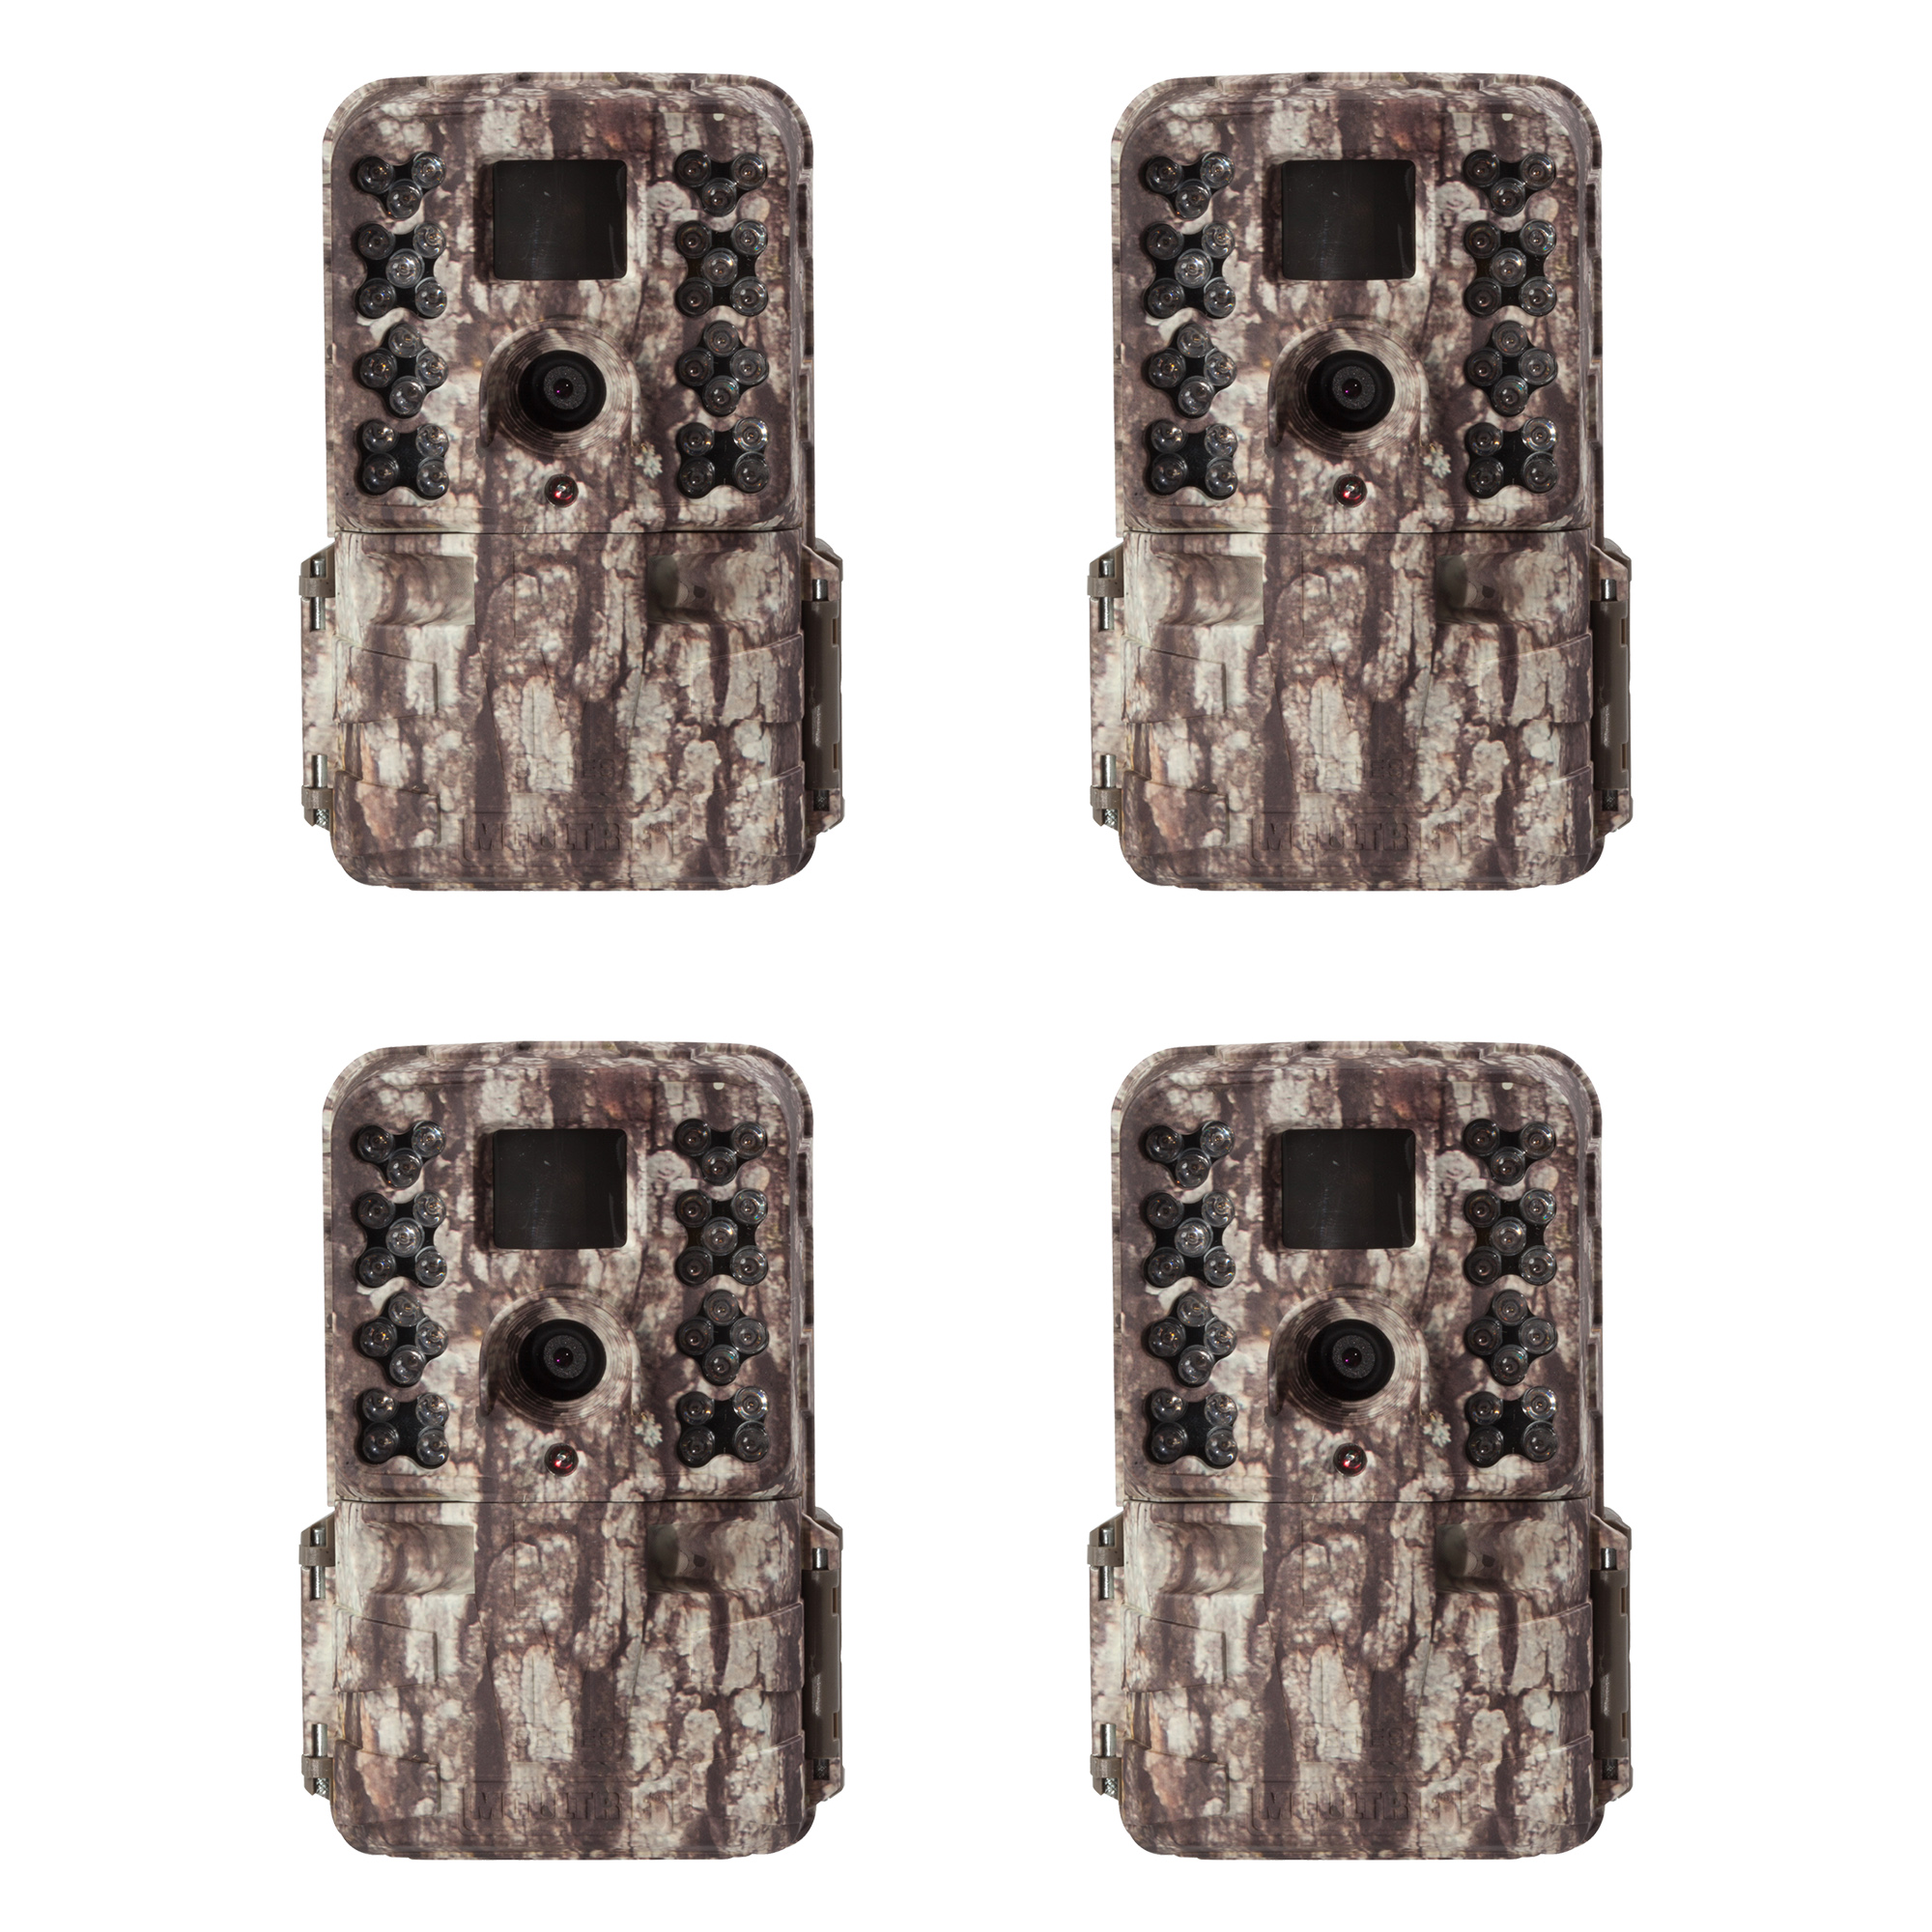 Moultrie M-40 16MP 80' FHD Video Infrared Game Trail Camera, 4 Pack | MCG-13181